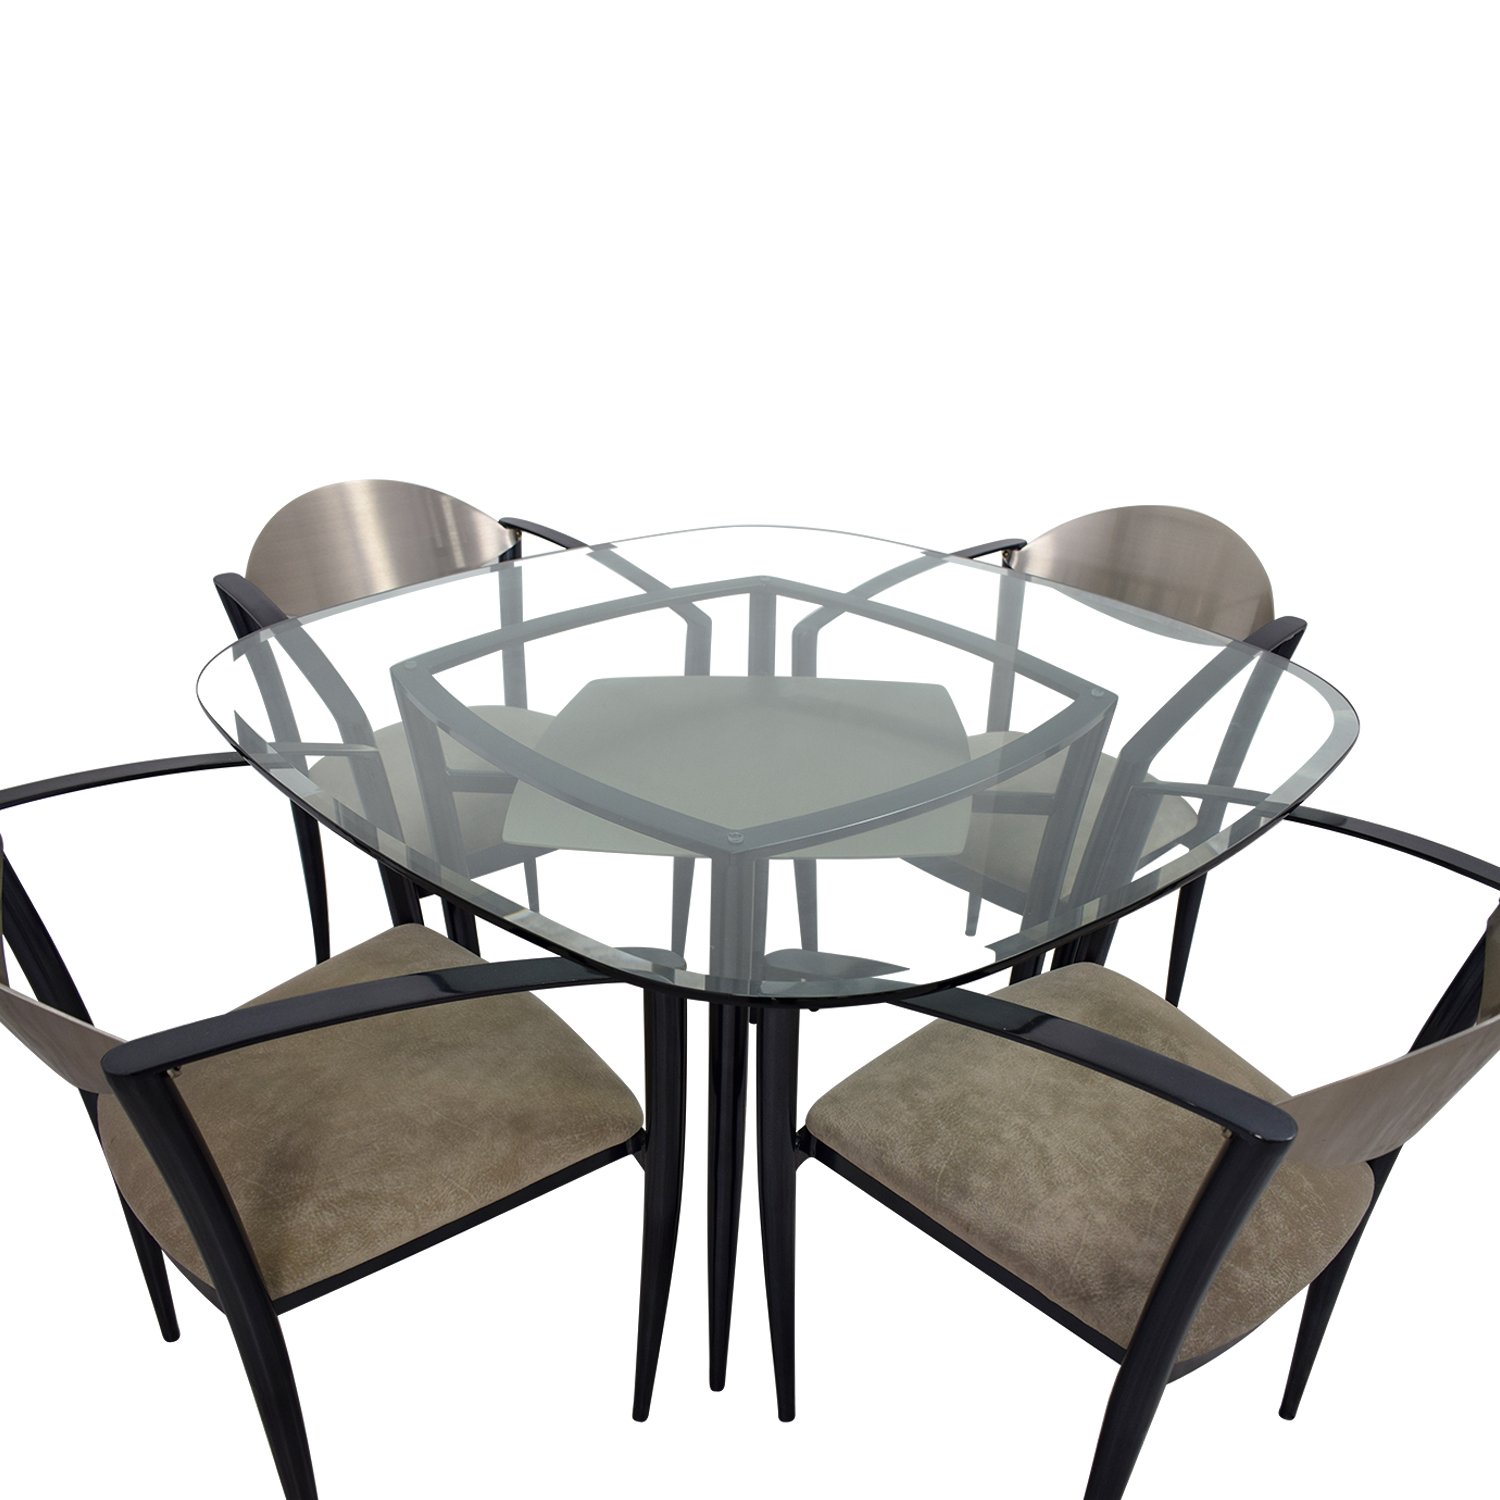 Secondhand Chairs And Tables: Glass Dining Table With Metal And Beige Chairs